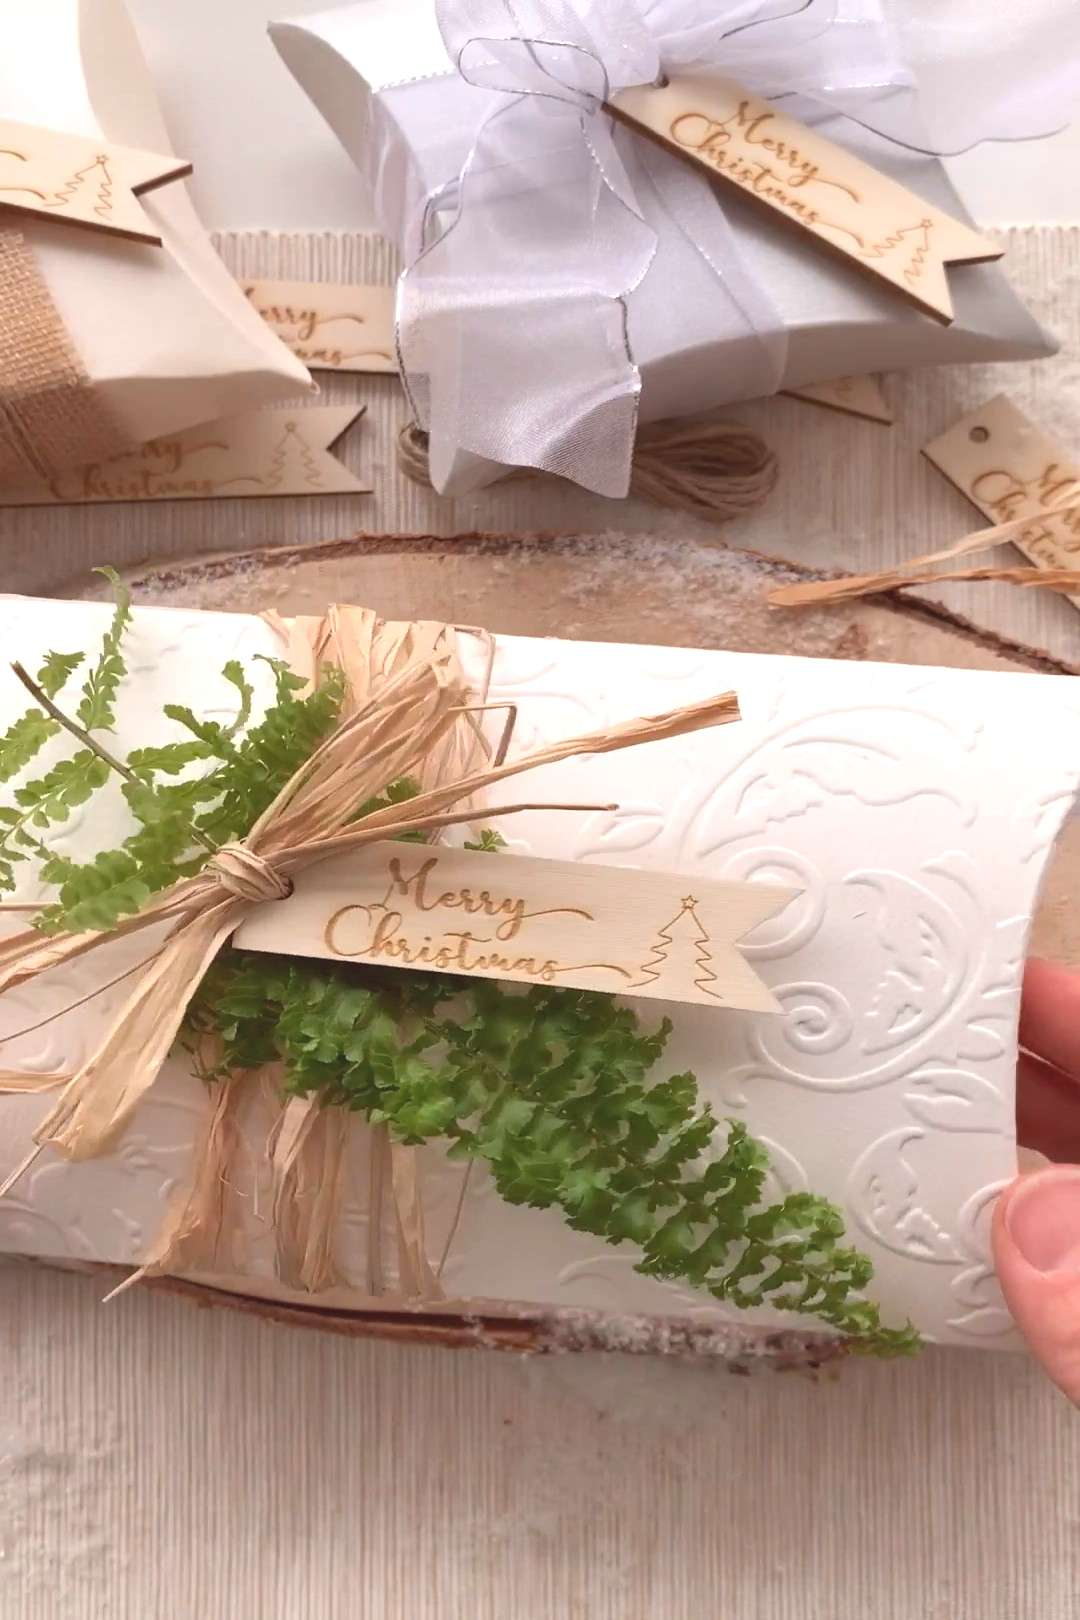 4 Pretty Ways to add your Christmas tag